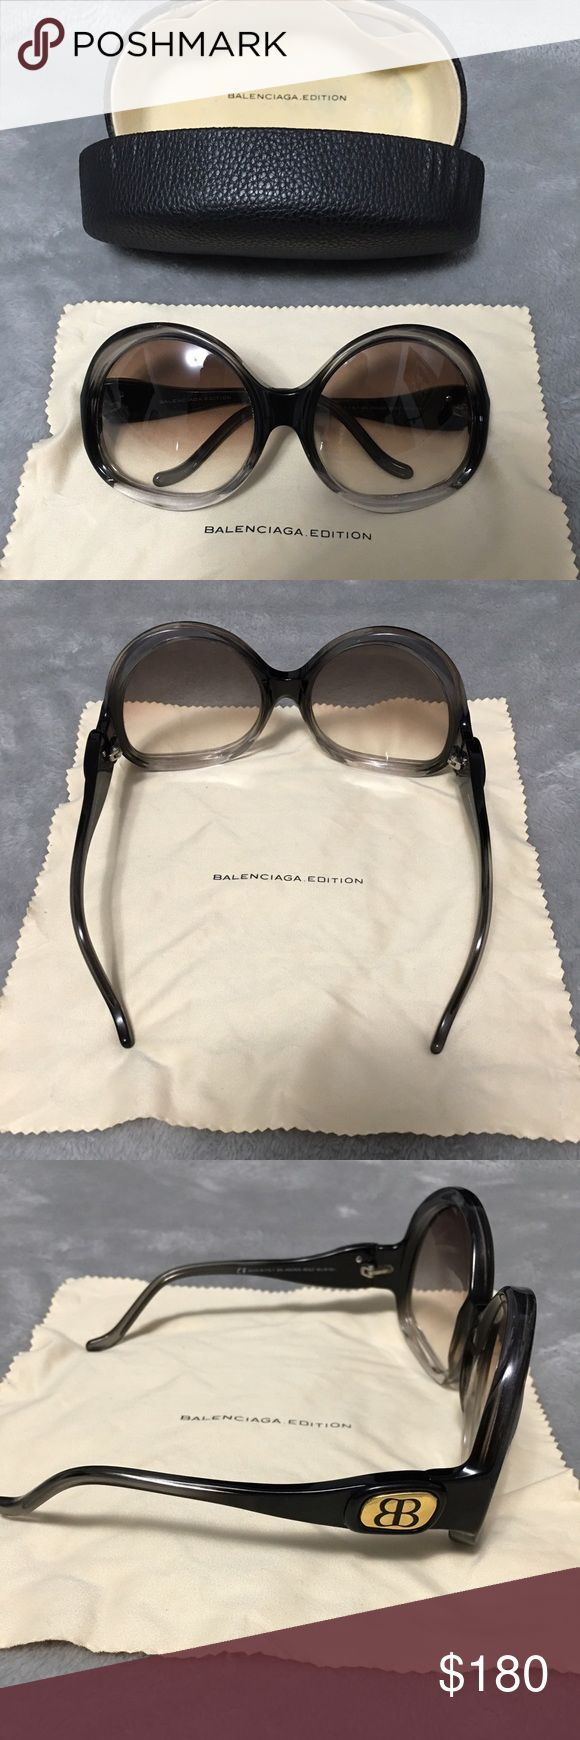 Balenciaga sunglasses Gorgeous sunglasses by Balenciaga seen on Kris Jenner & JLo. There are no defects to these but the case as alittle peeling on the inside. Balenciaga Accessories Sunglasses